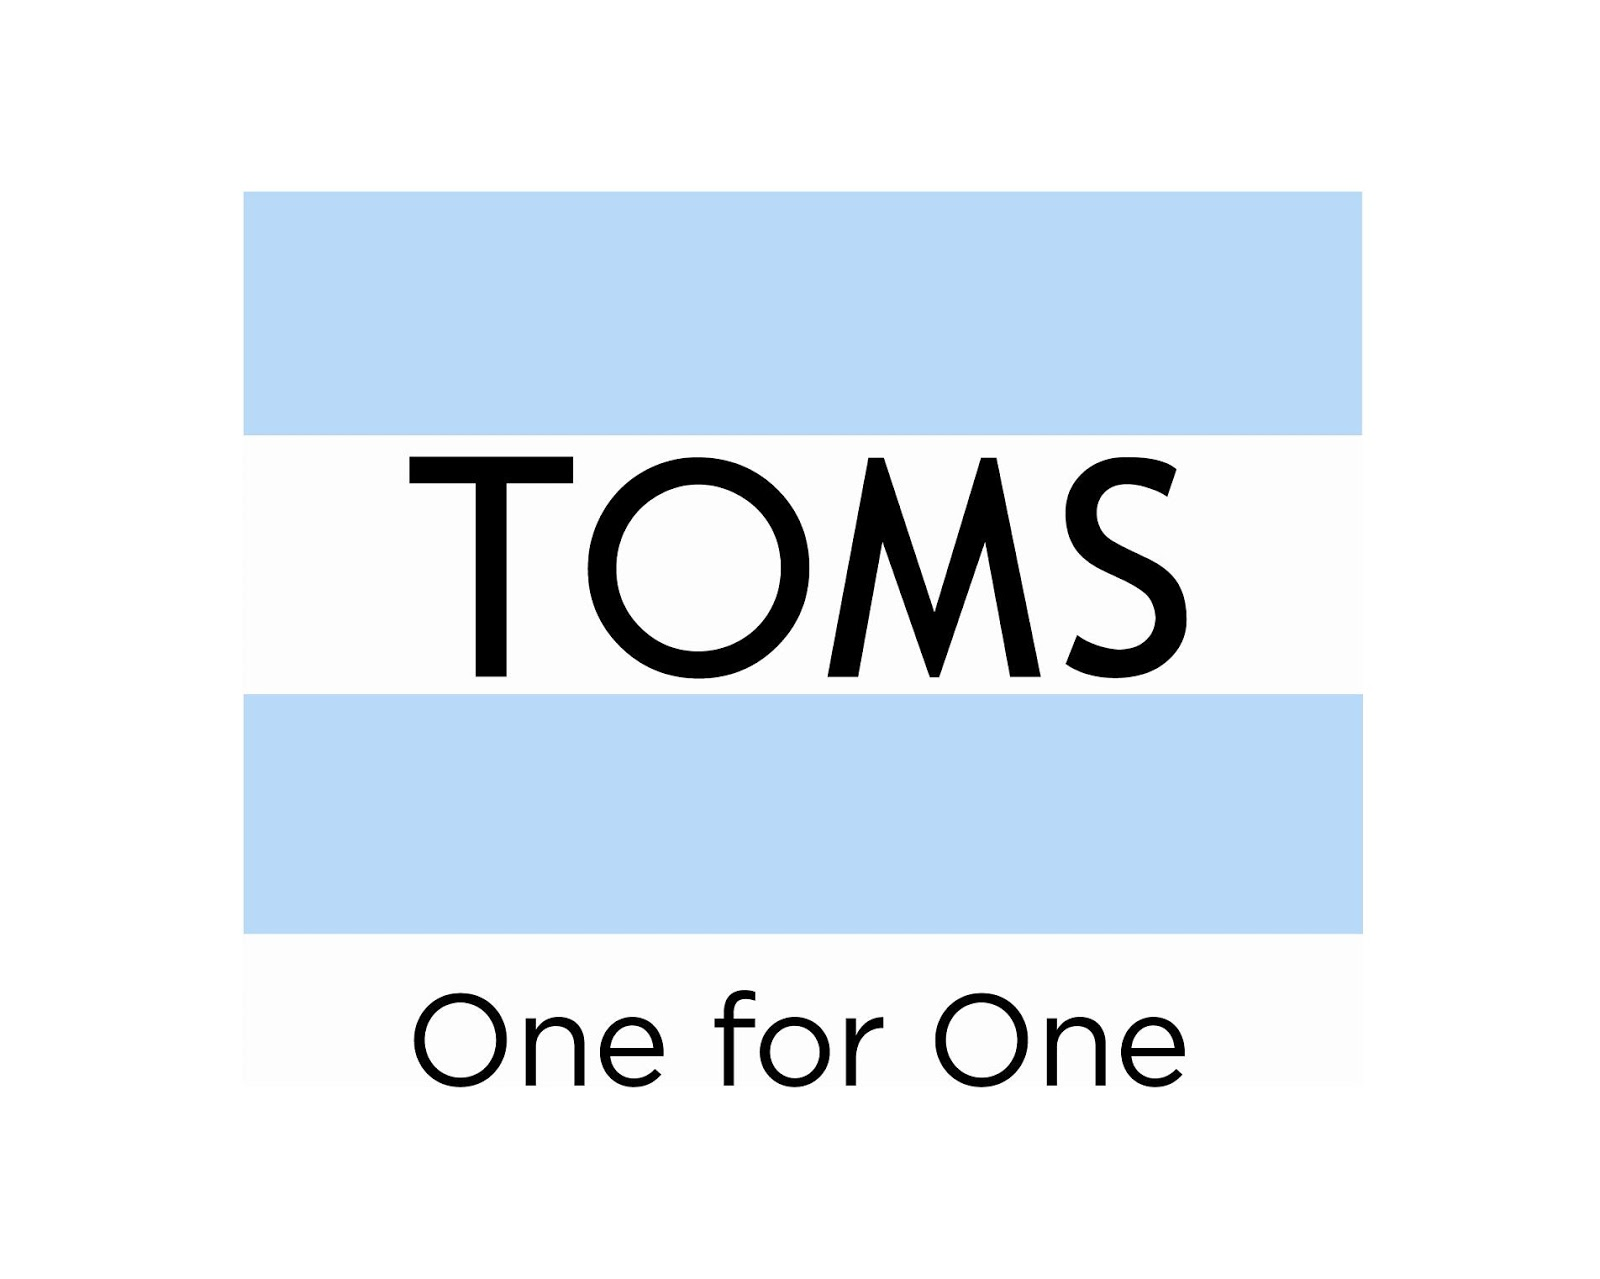 toms-logo-with-mission.jpg